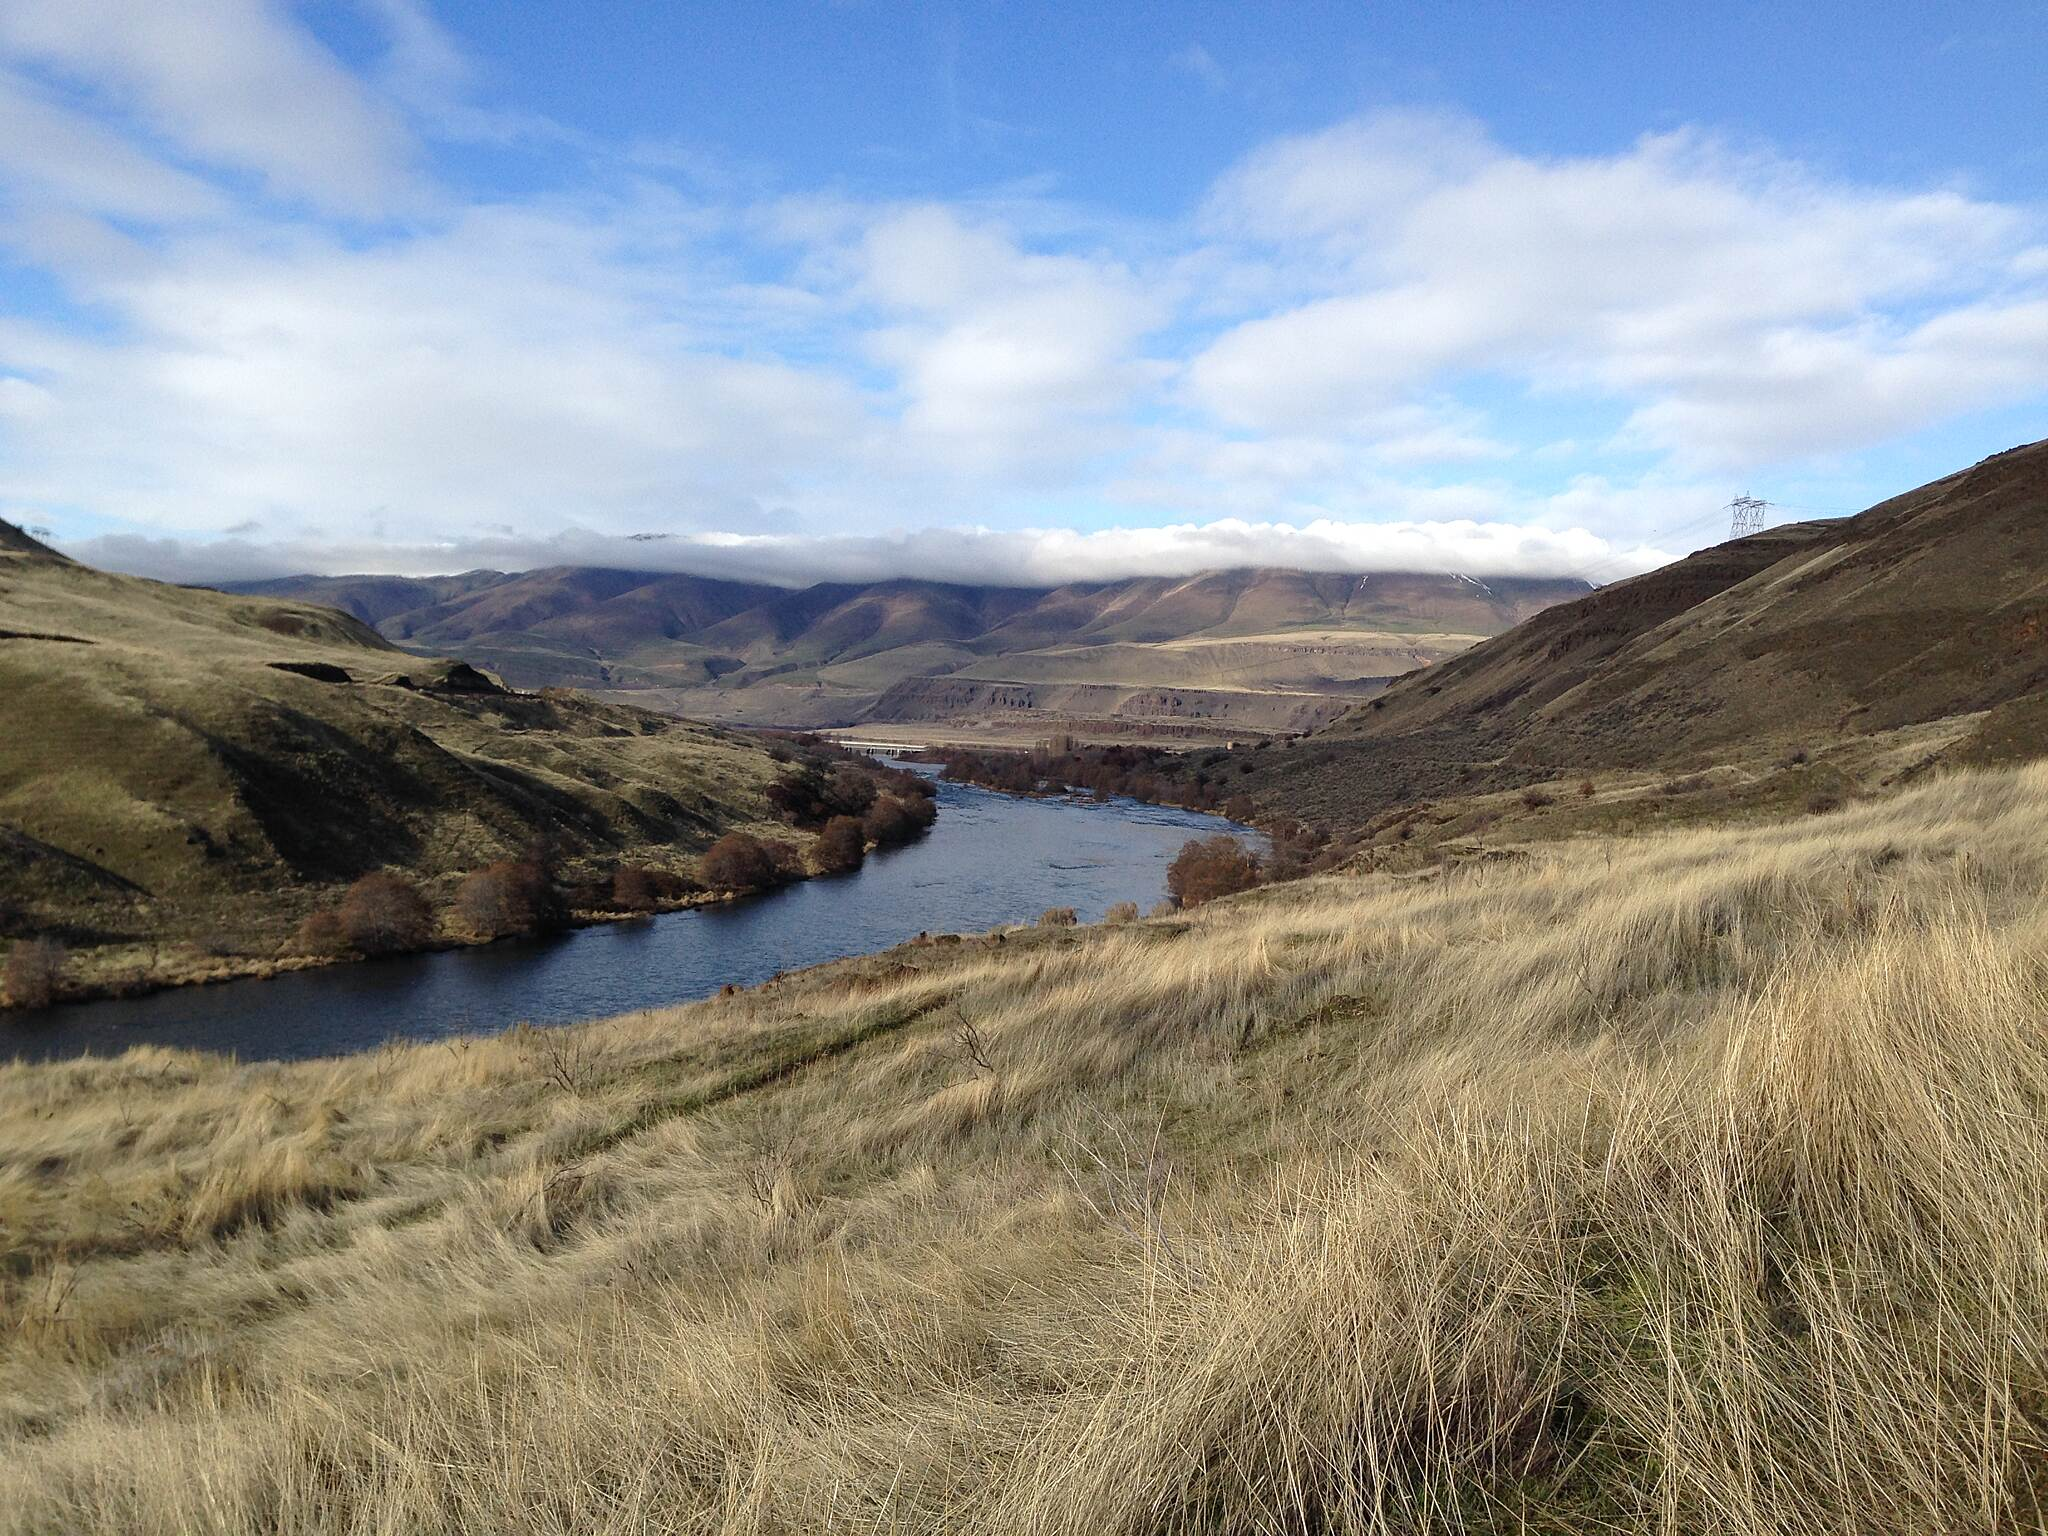 Deschutes River Railbed Trail Looking North